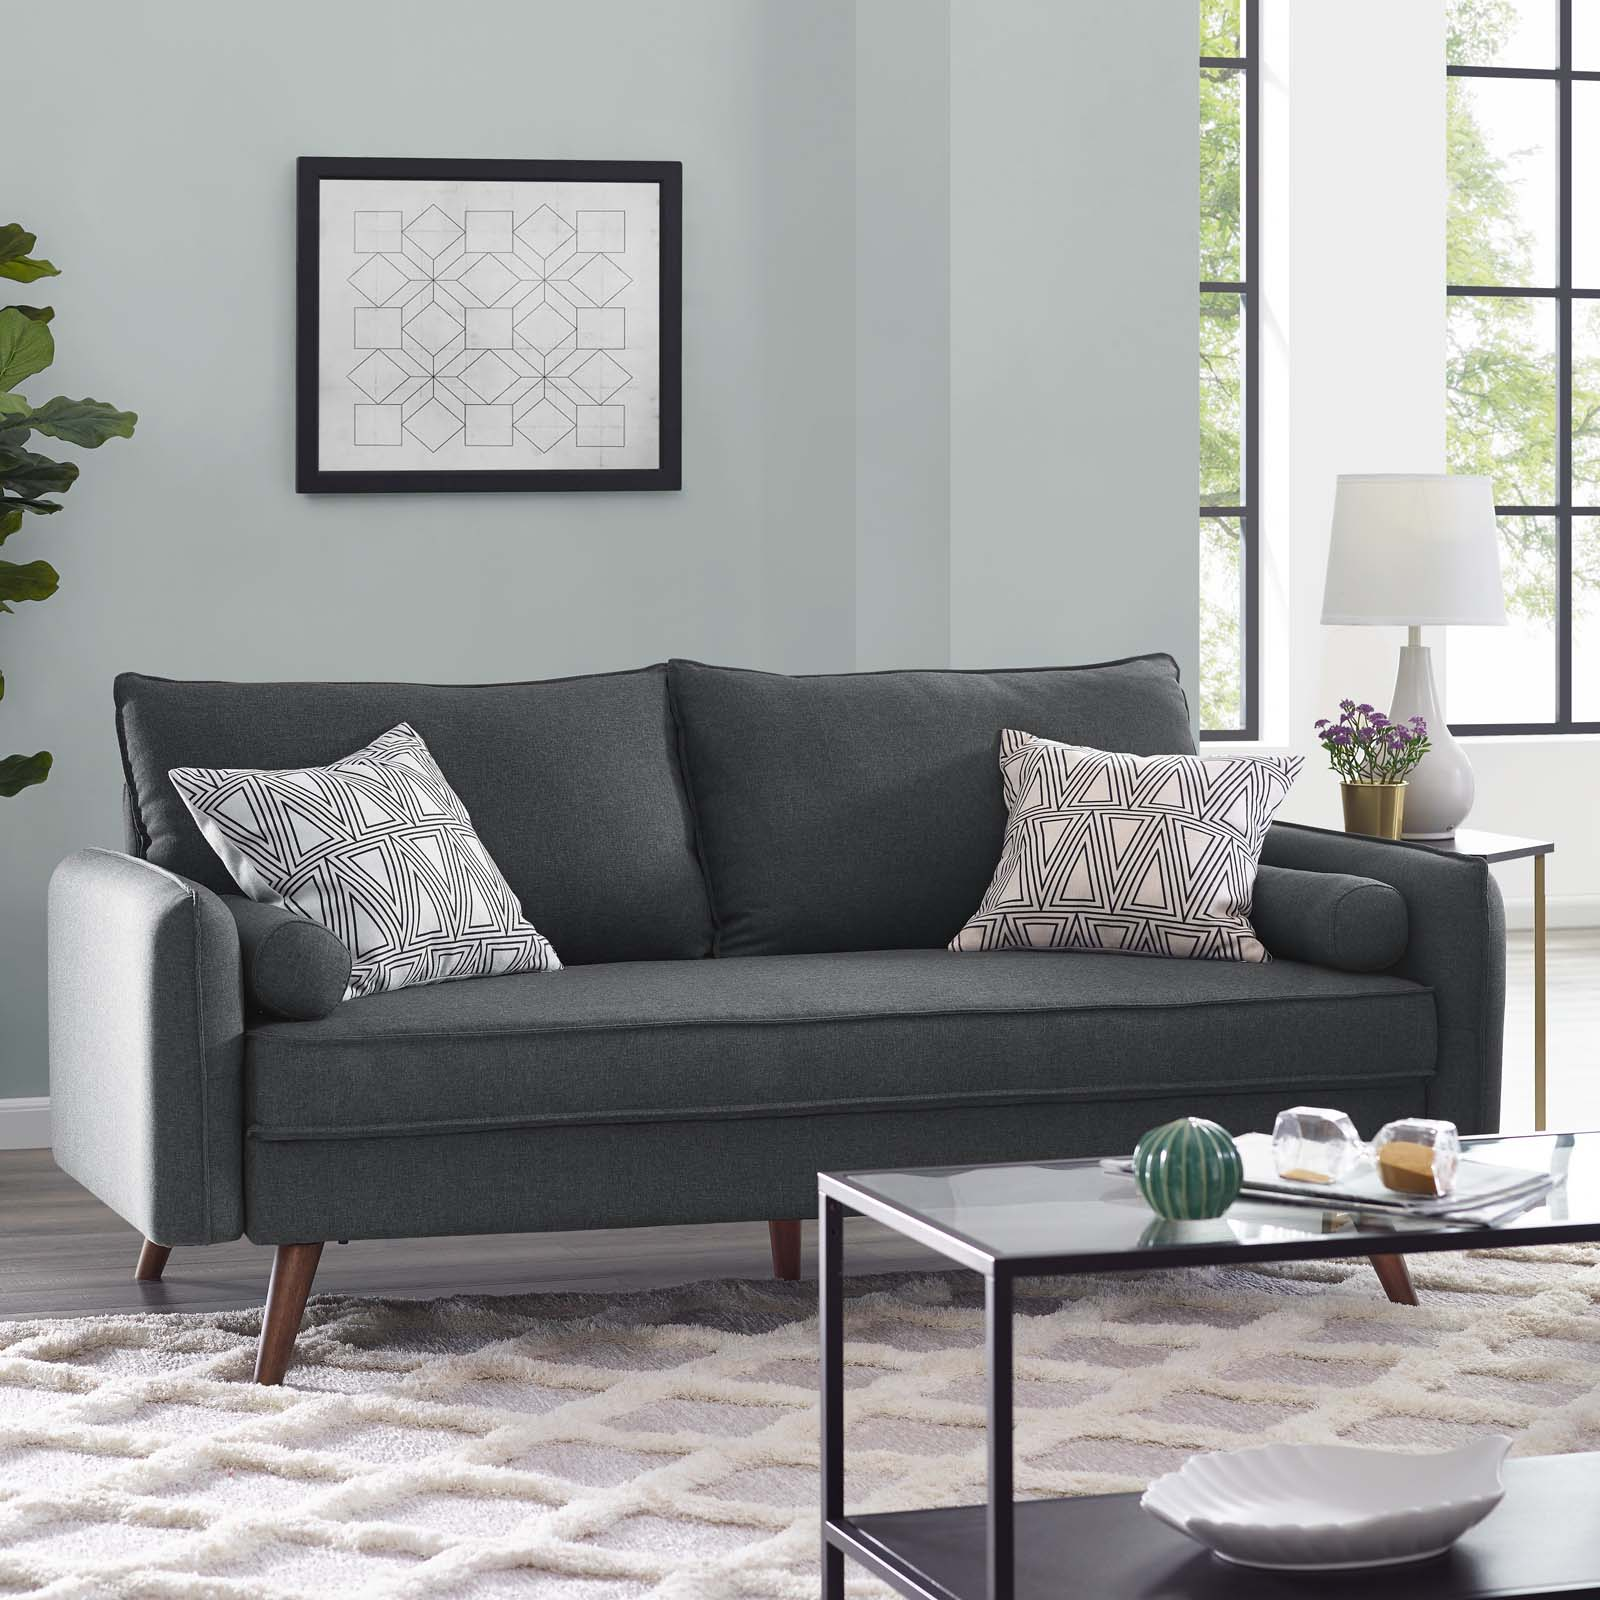 Modway Revive Fabric Upholstered Sofa, Multiple Colors